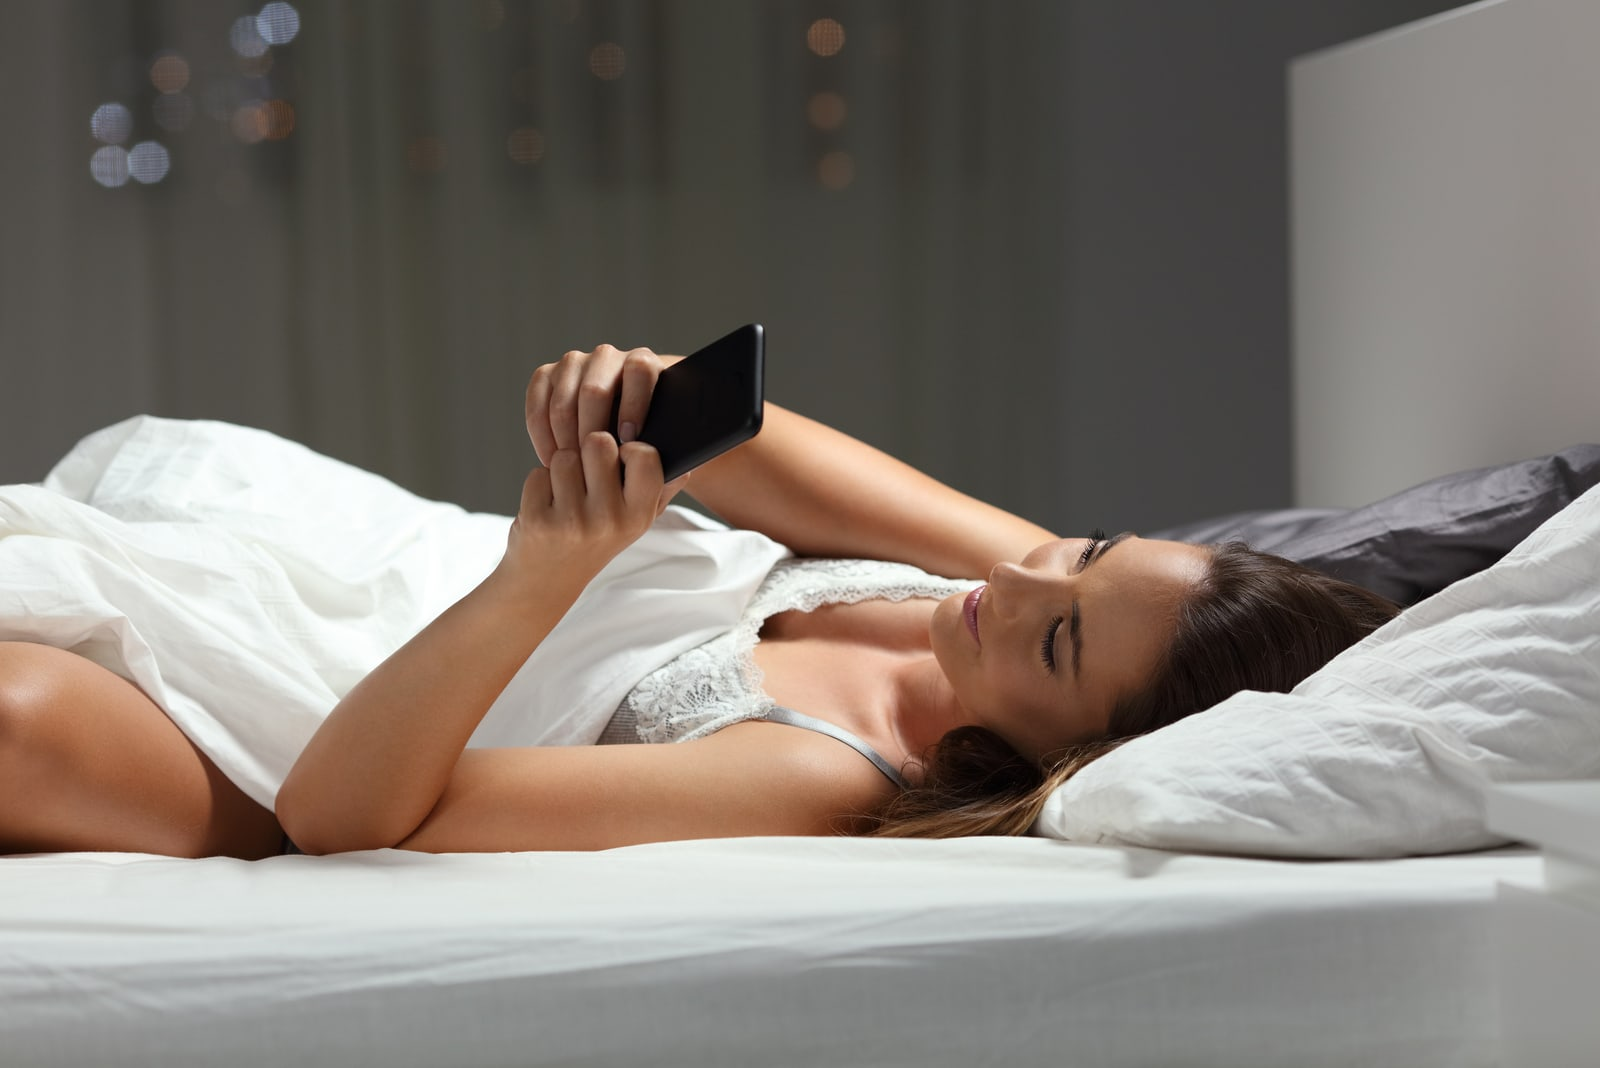 brunette lying in the bedroom bed and using a cell phone